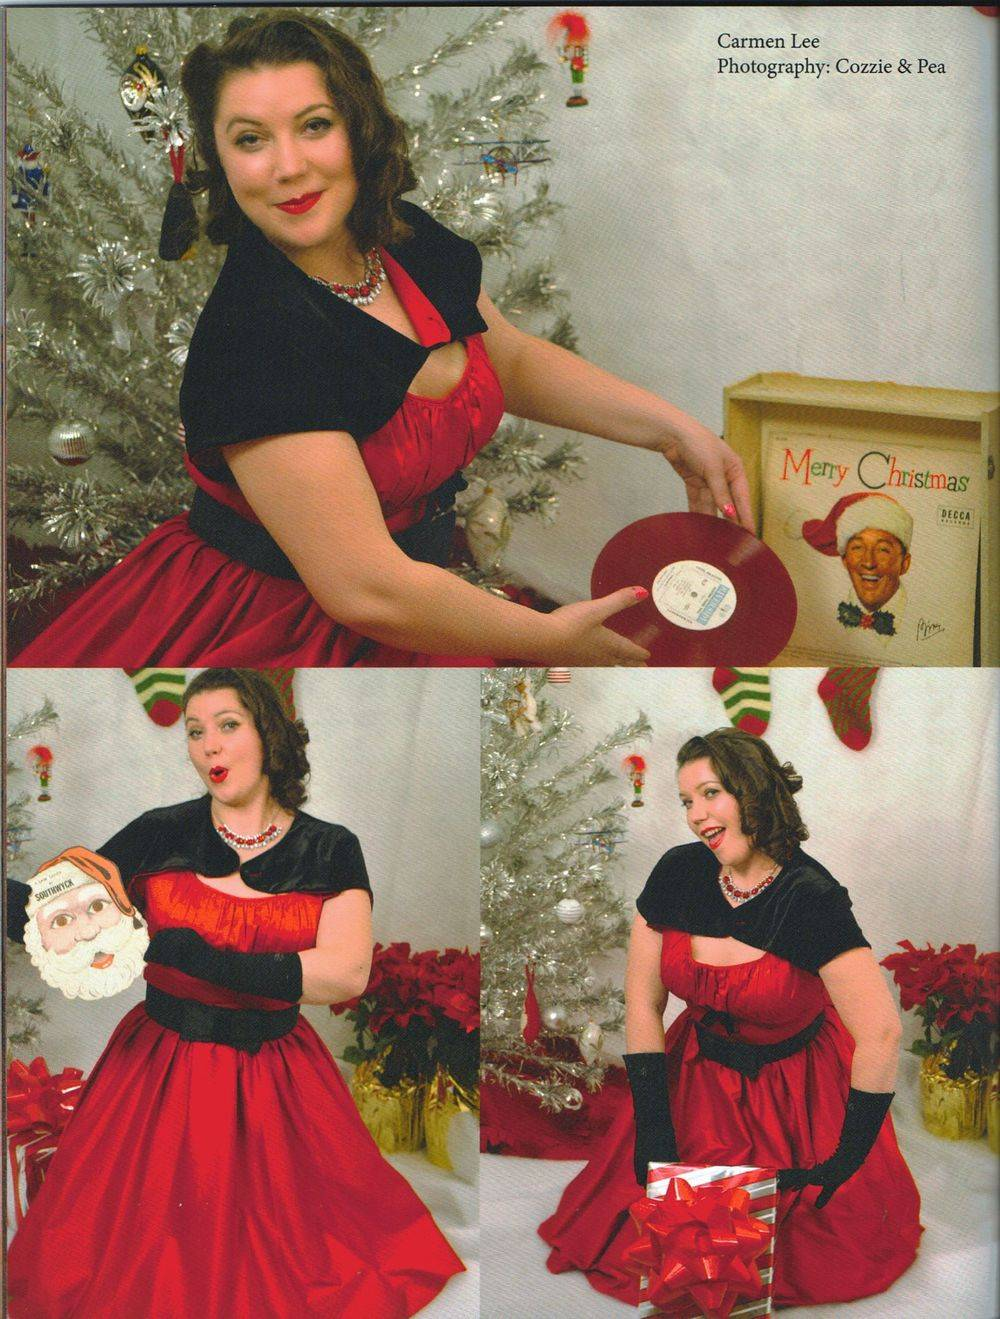 Drive In Magazine Holiday Issue Dec 2012